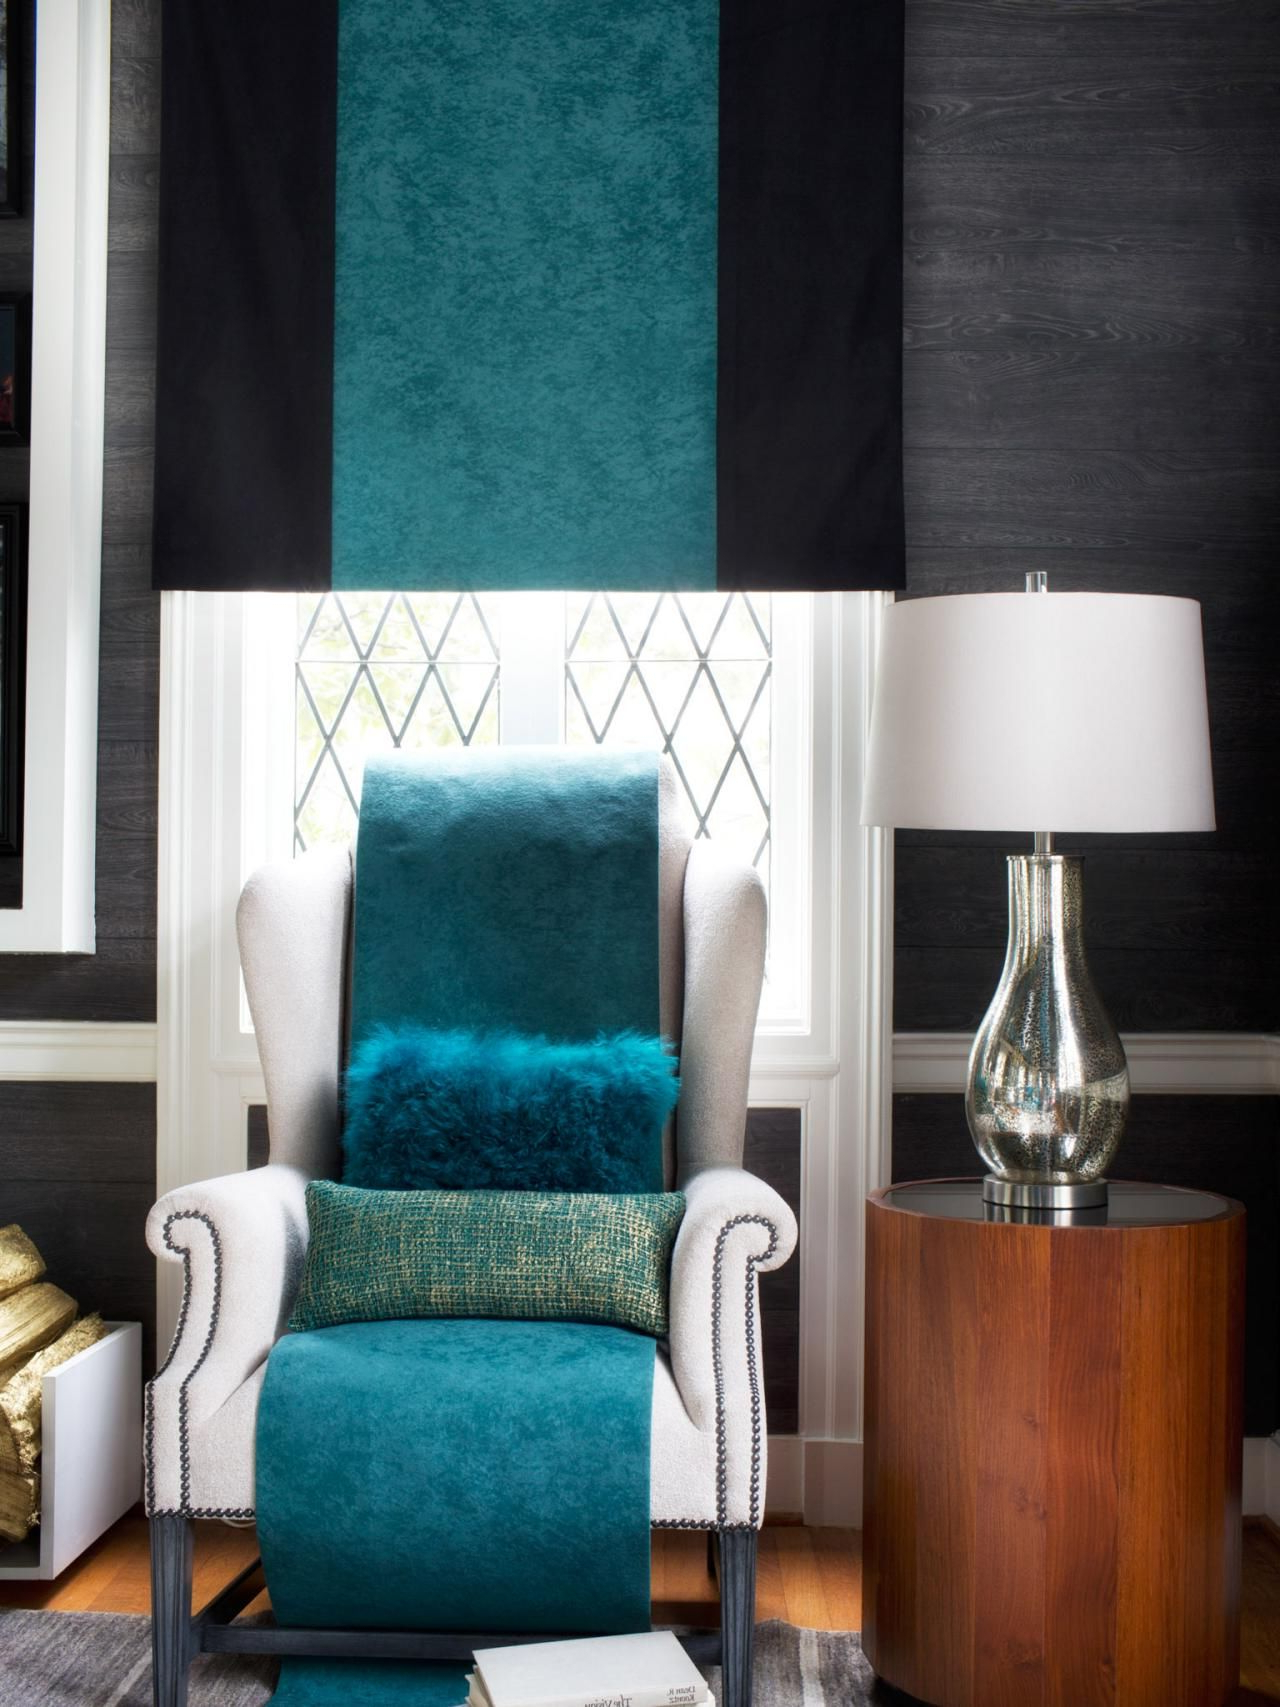 Most Recently Released Gallin Wingback Chairs Pertaining To Design Trend: Decorating With Blue (View 8 of 20)